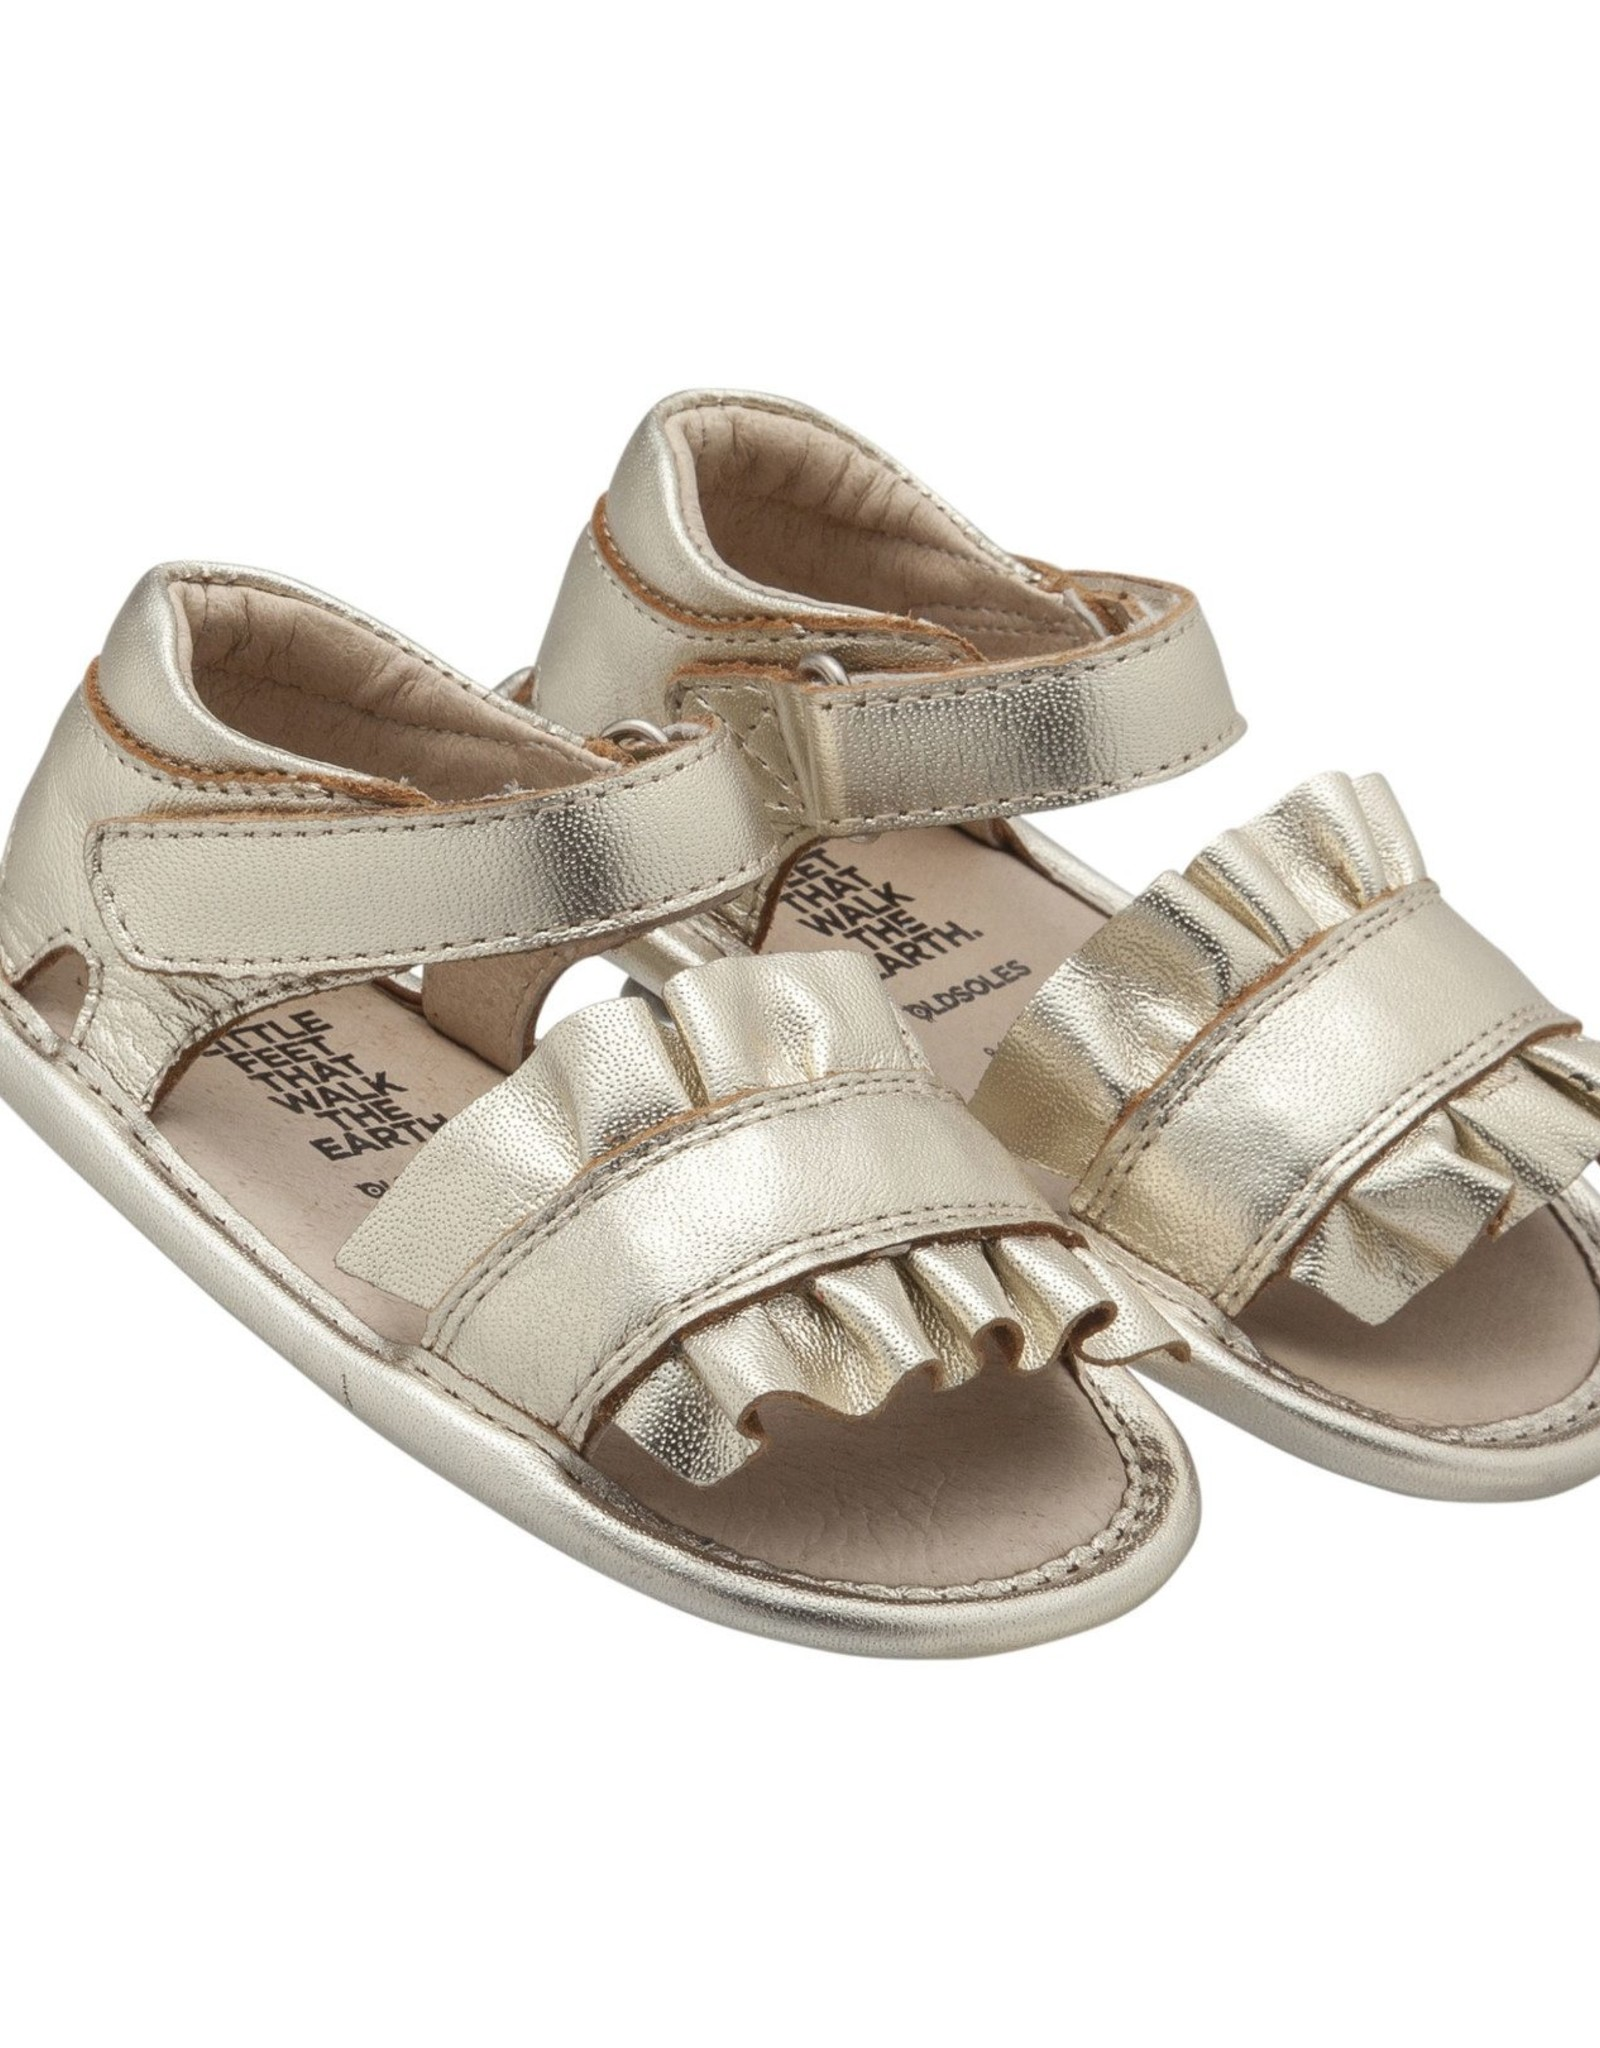 Old Soles Ruffle Baby Sandals